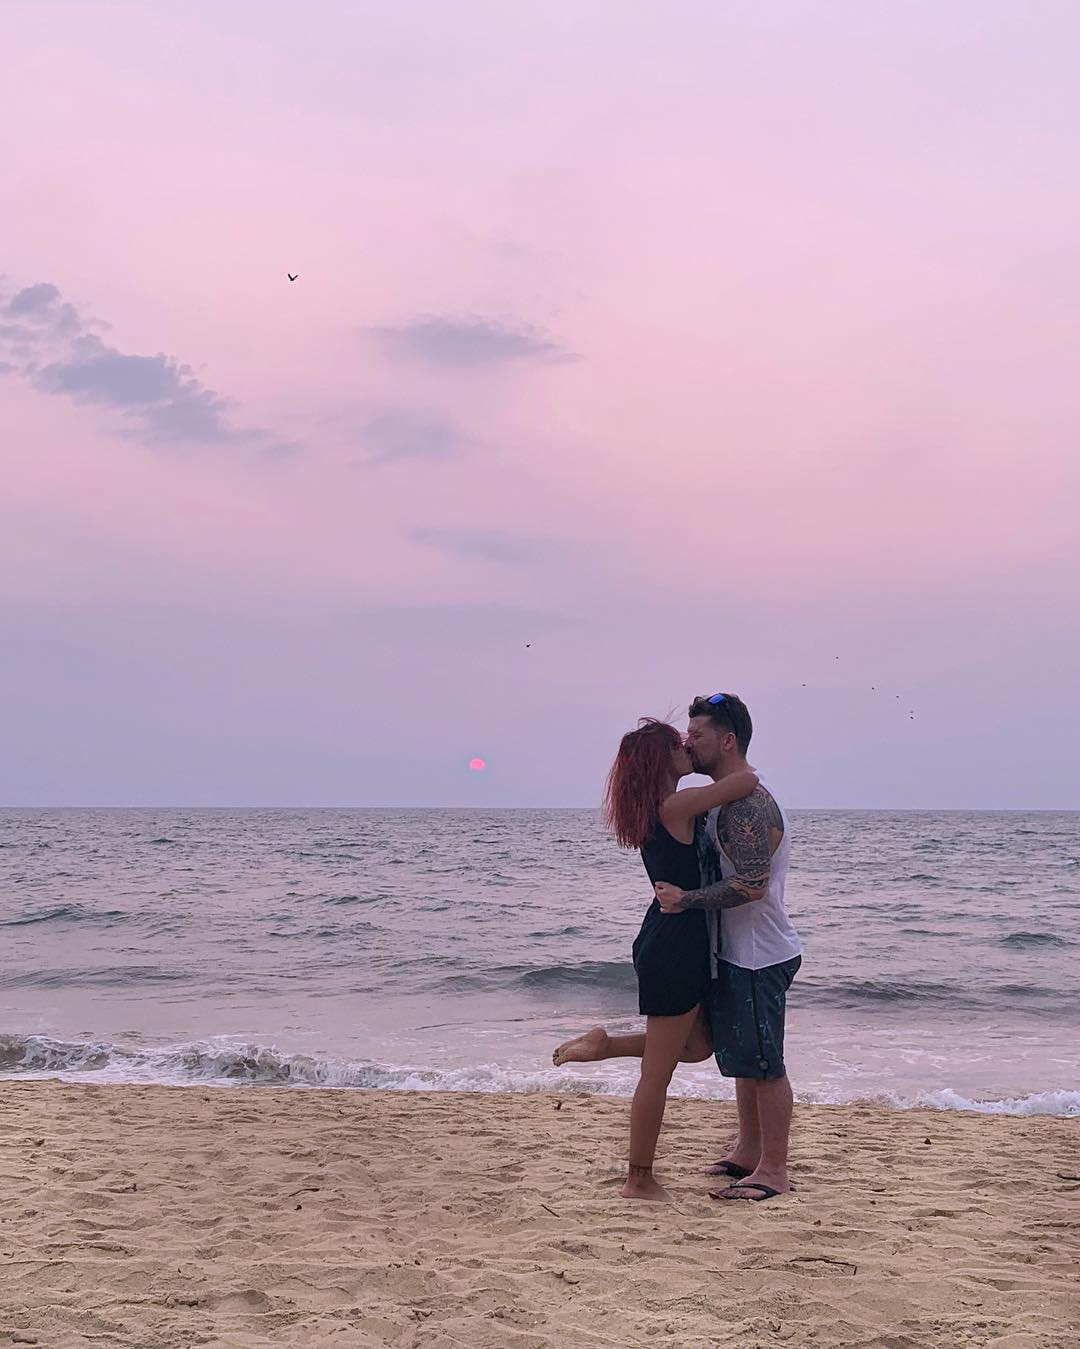 Will and Nina embracing on a beach